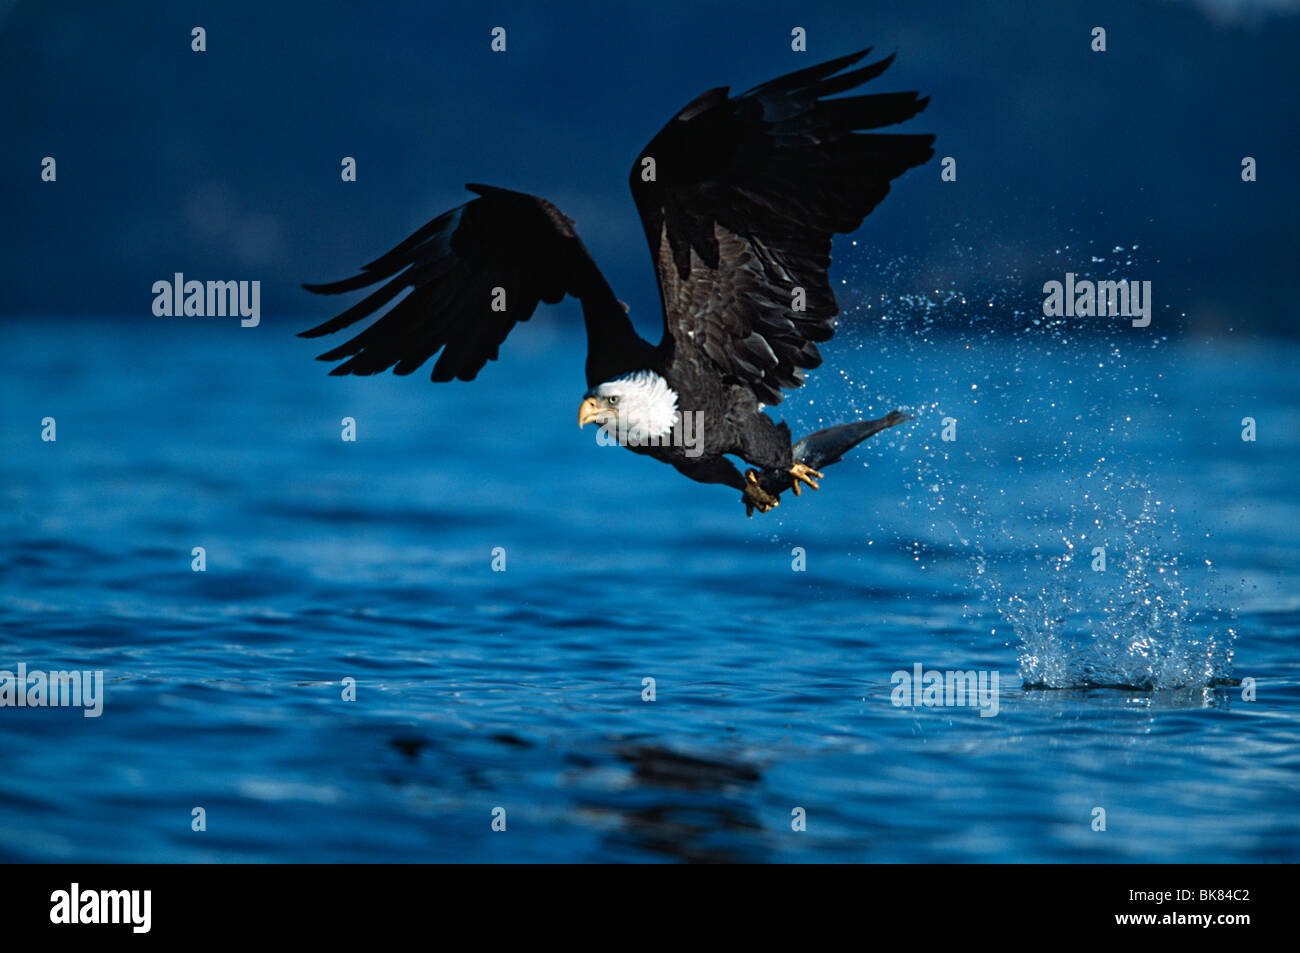 Bald Eagle In Flight With Just Captured Fish In Talons - Stock Image